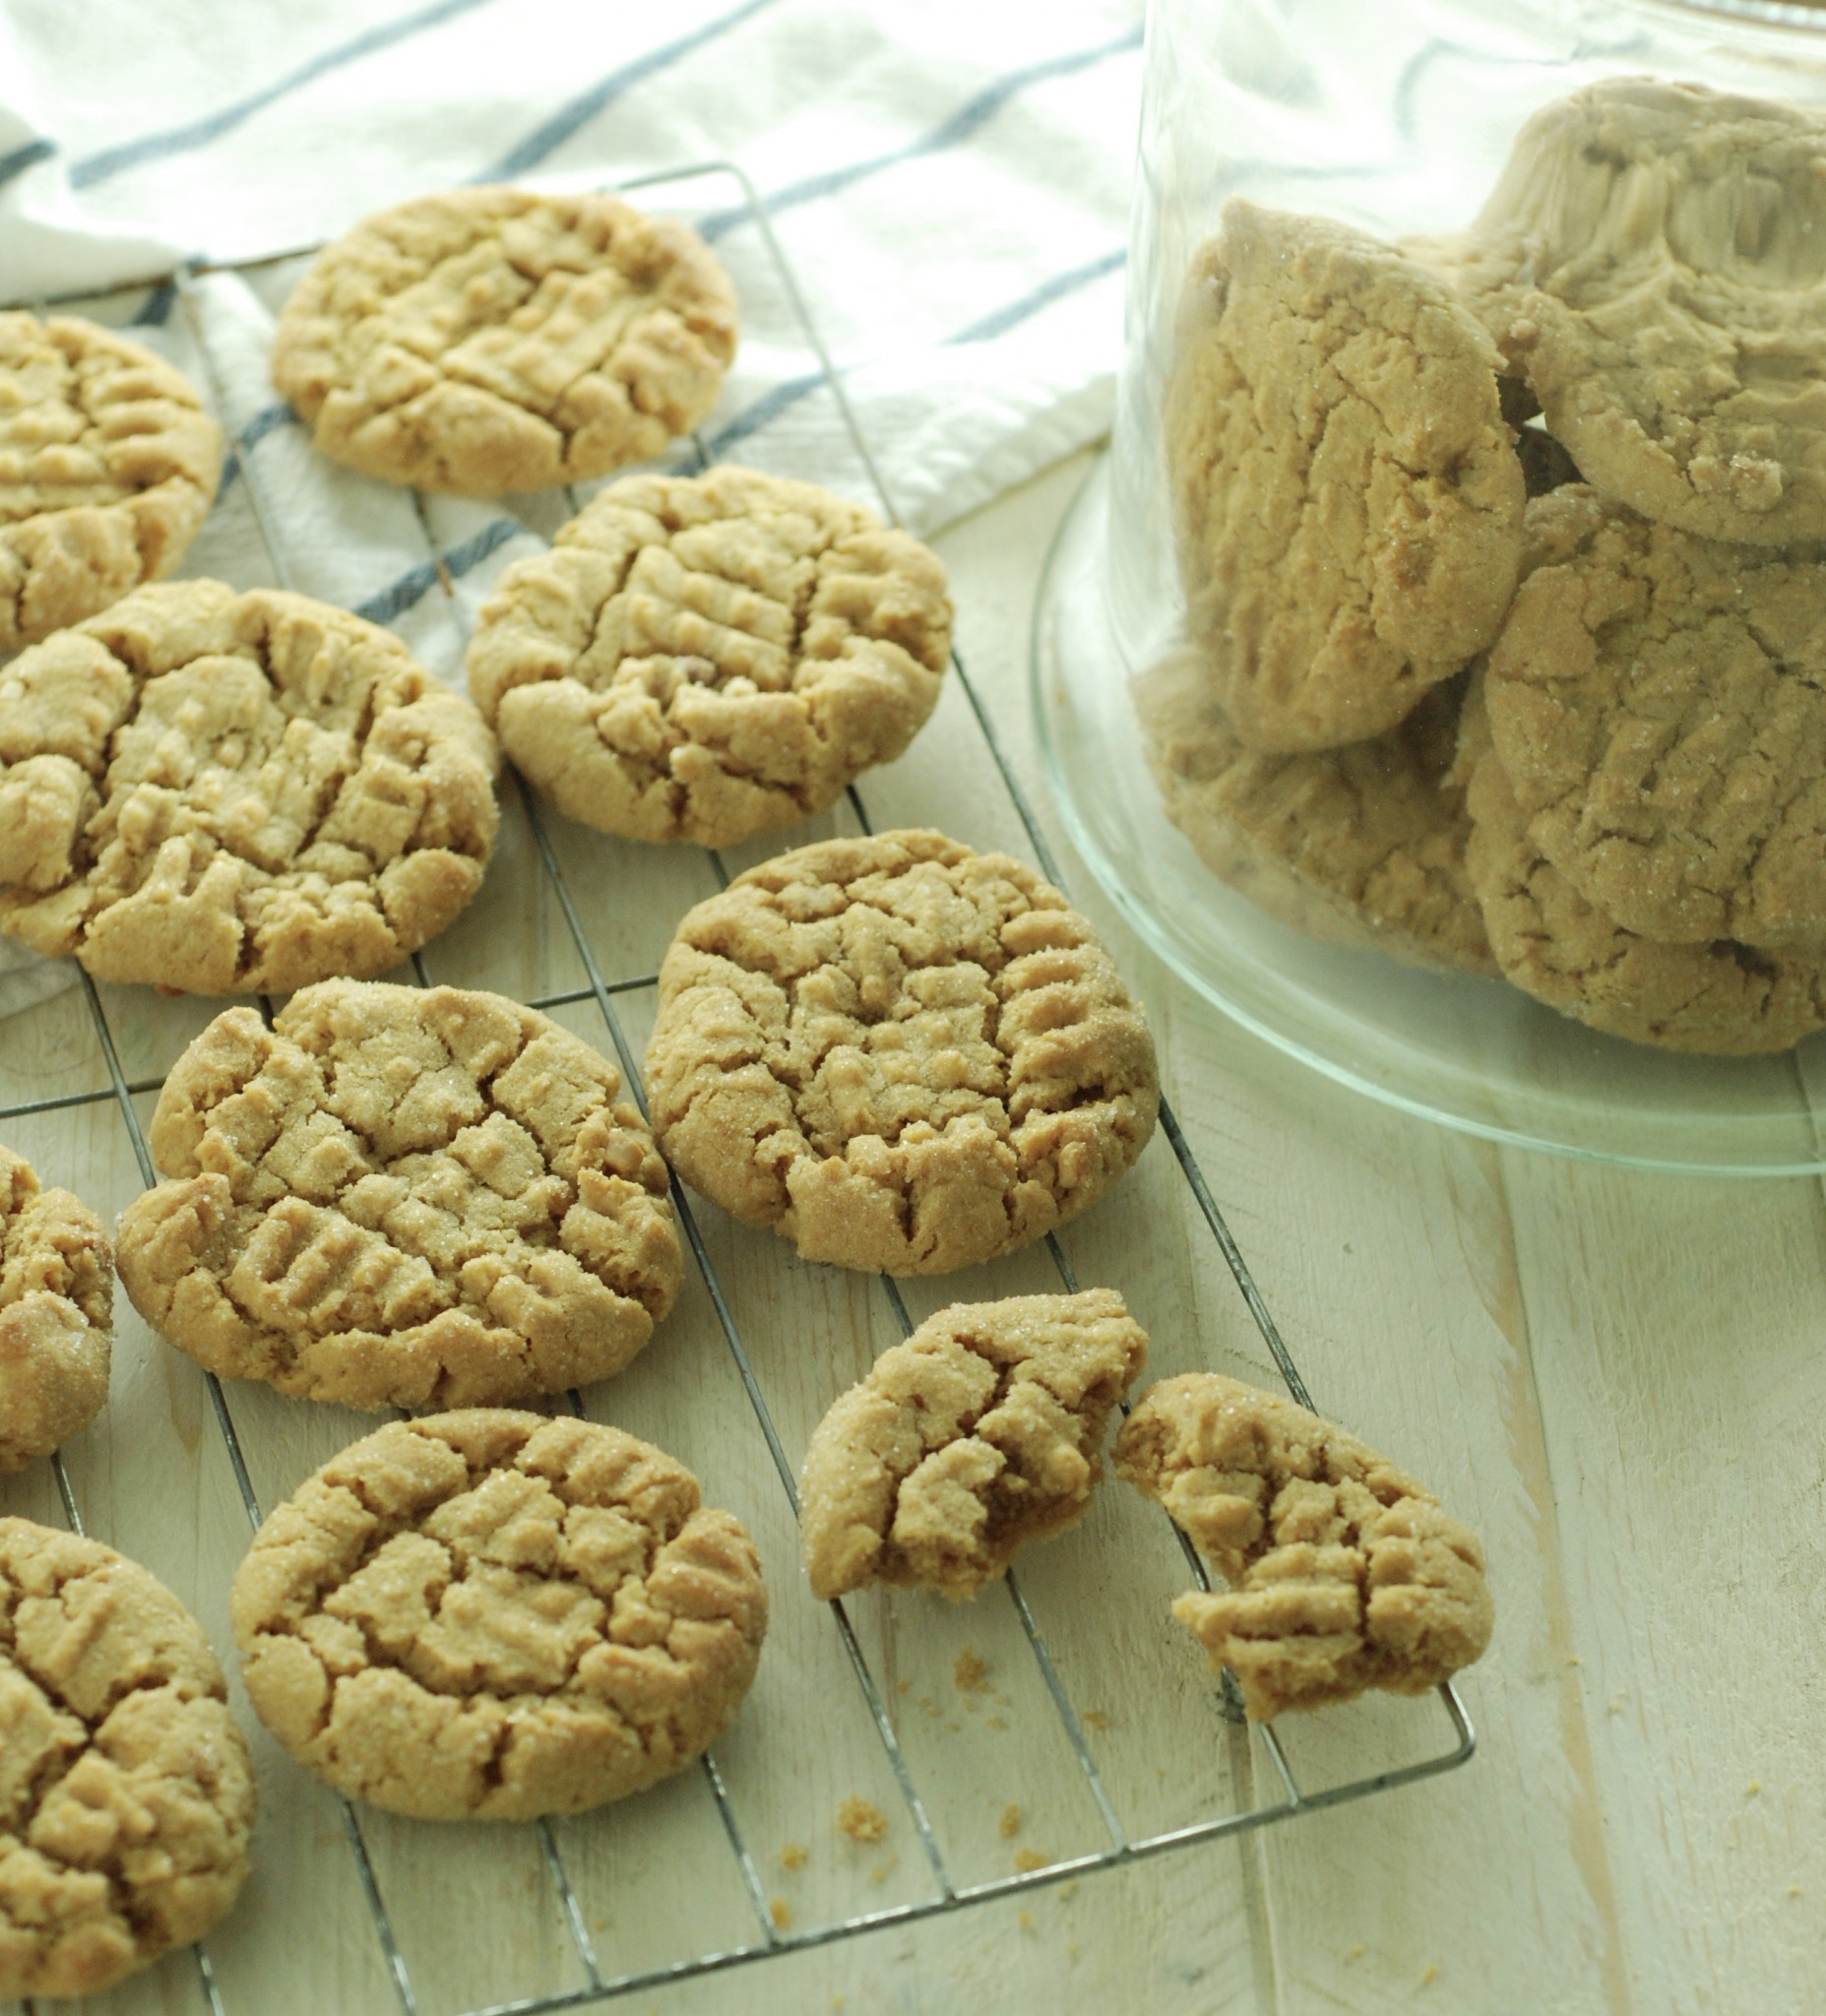 Old-fashioned, fresh out of the oven peanut butter cookies, but made gluten free! My cookie dreams have come true!